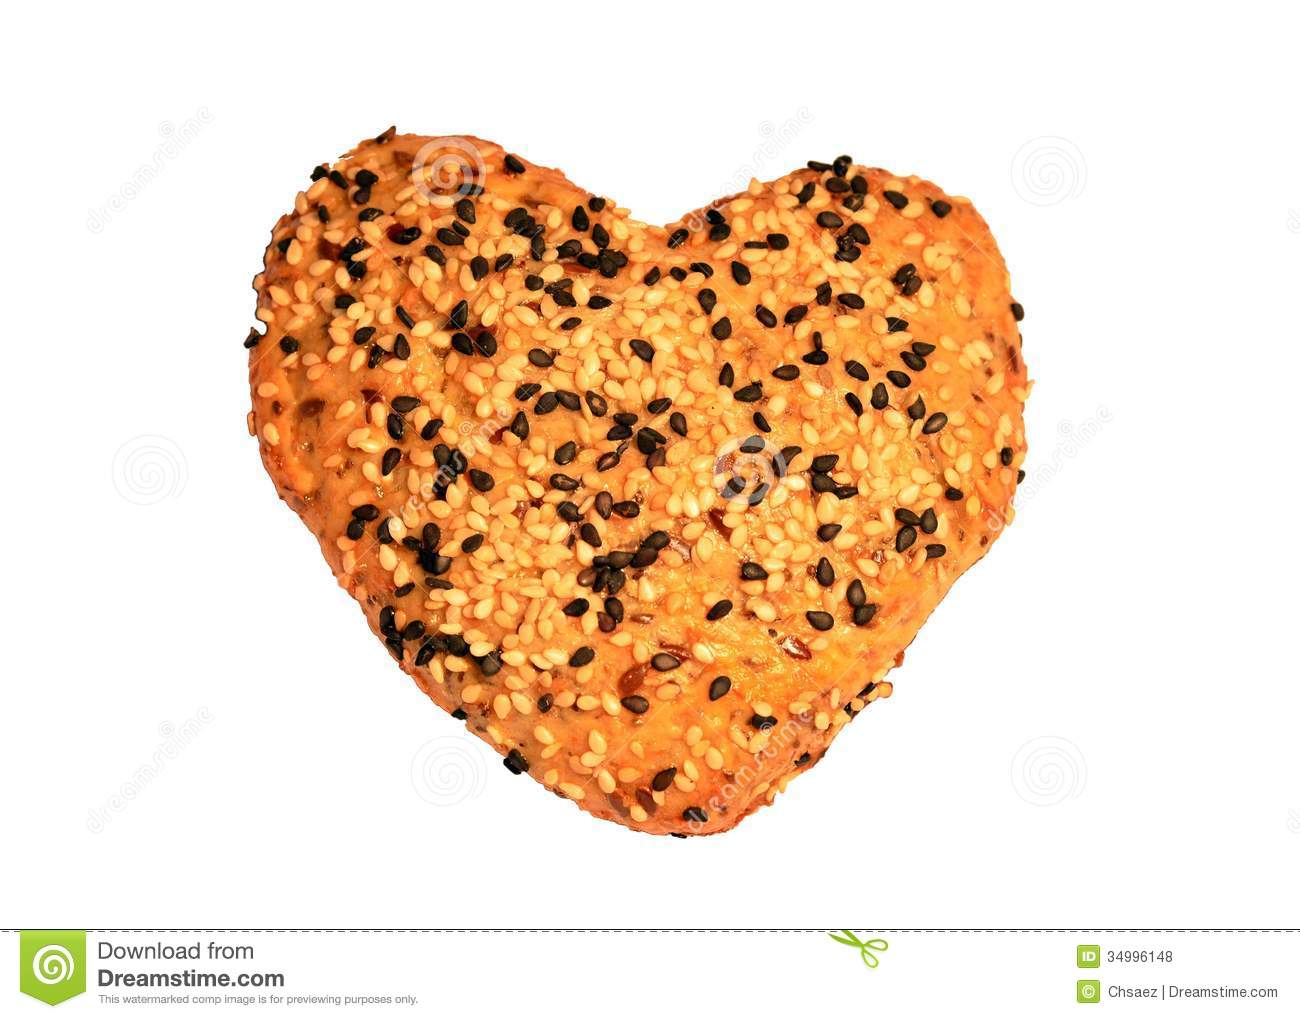 Heart Shaped Bread With Black And White Sesame Seeds, Isolated.